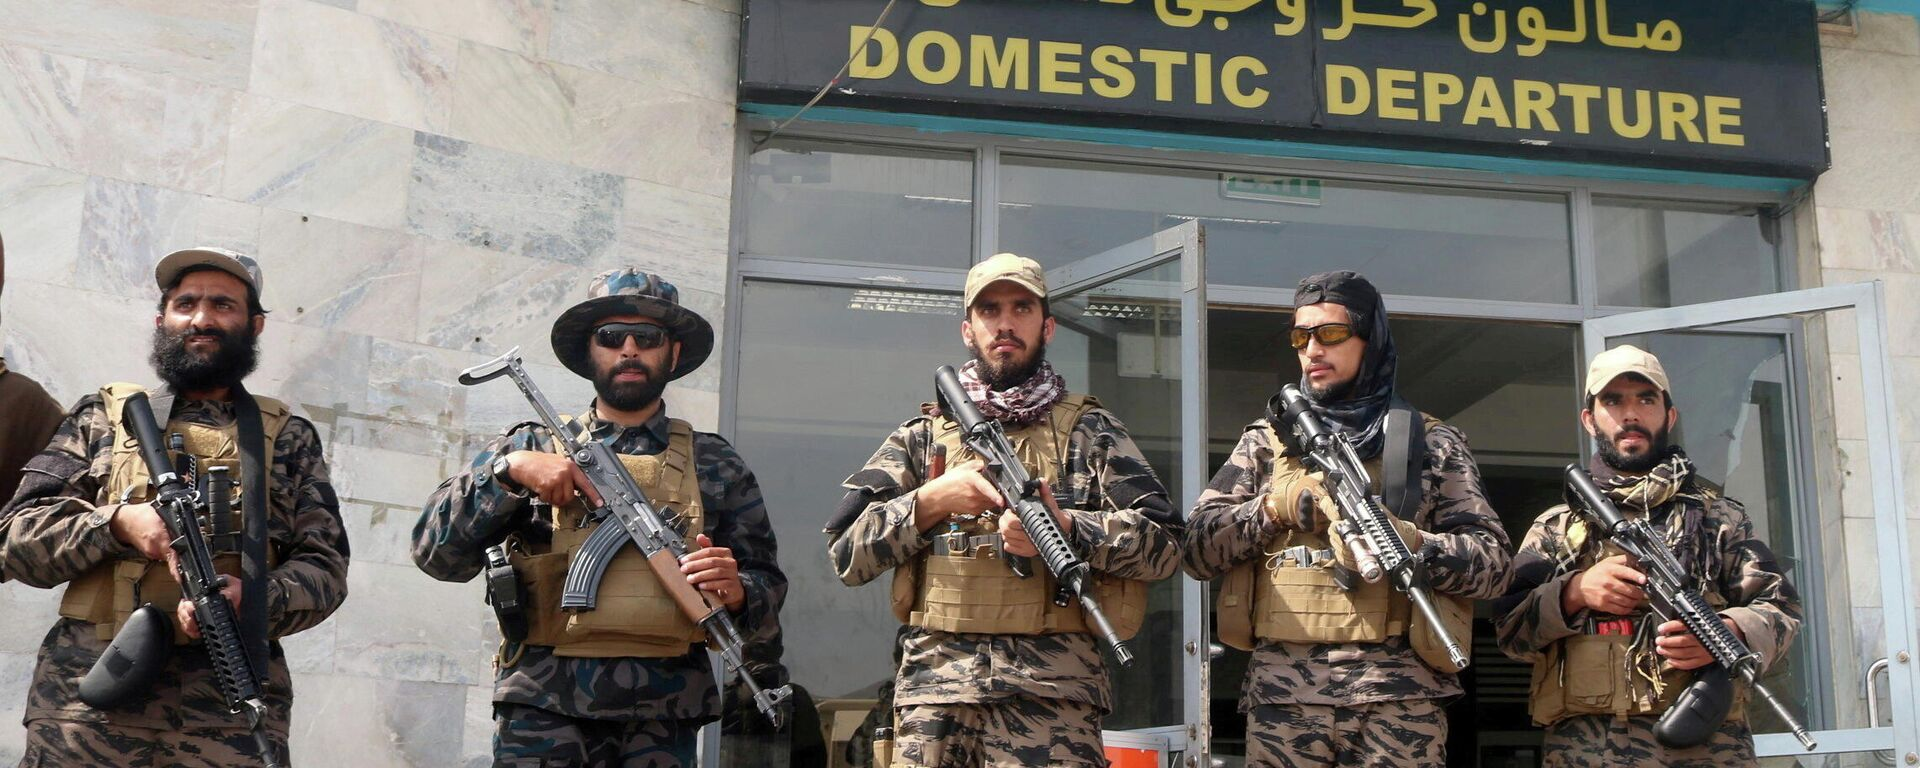 Taliban forces stand guard a day after the U.S. troops withdrawal from Hamid Karzai International Airport in Kabul, Afghanistan August 31, 2021. - Sputnik International, 1920, 16.09.2021